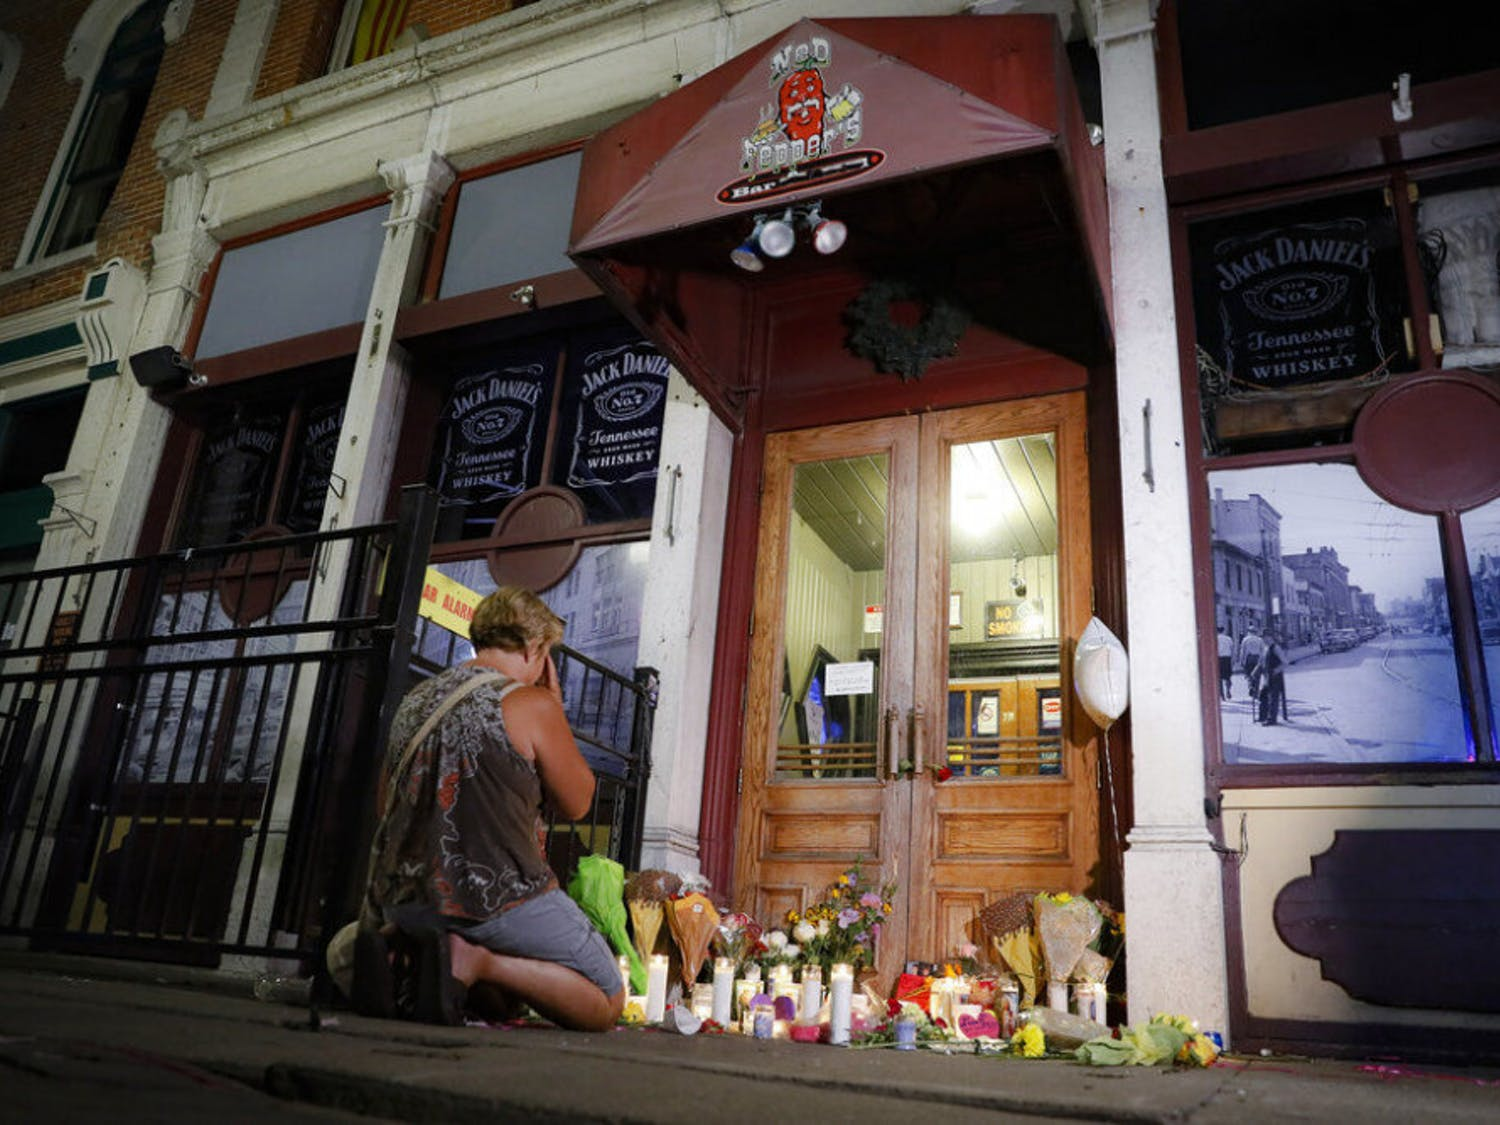 Mourners visit a makeshift memorial outside Ned Peppers bar following a vigil at the scene of a mass shooting, Sunday, Aug. 4, 2019, in Dayton, Ohio. A masked gunman in body armor opened fire early Sunday in the popular entertainment district in Dayton, killing several people, including his sister, and wounding dozens before he was quickly slain by police, officials said.